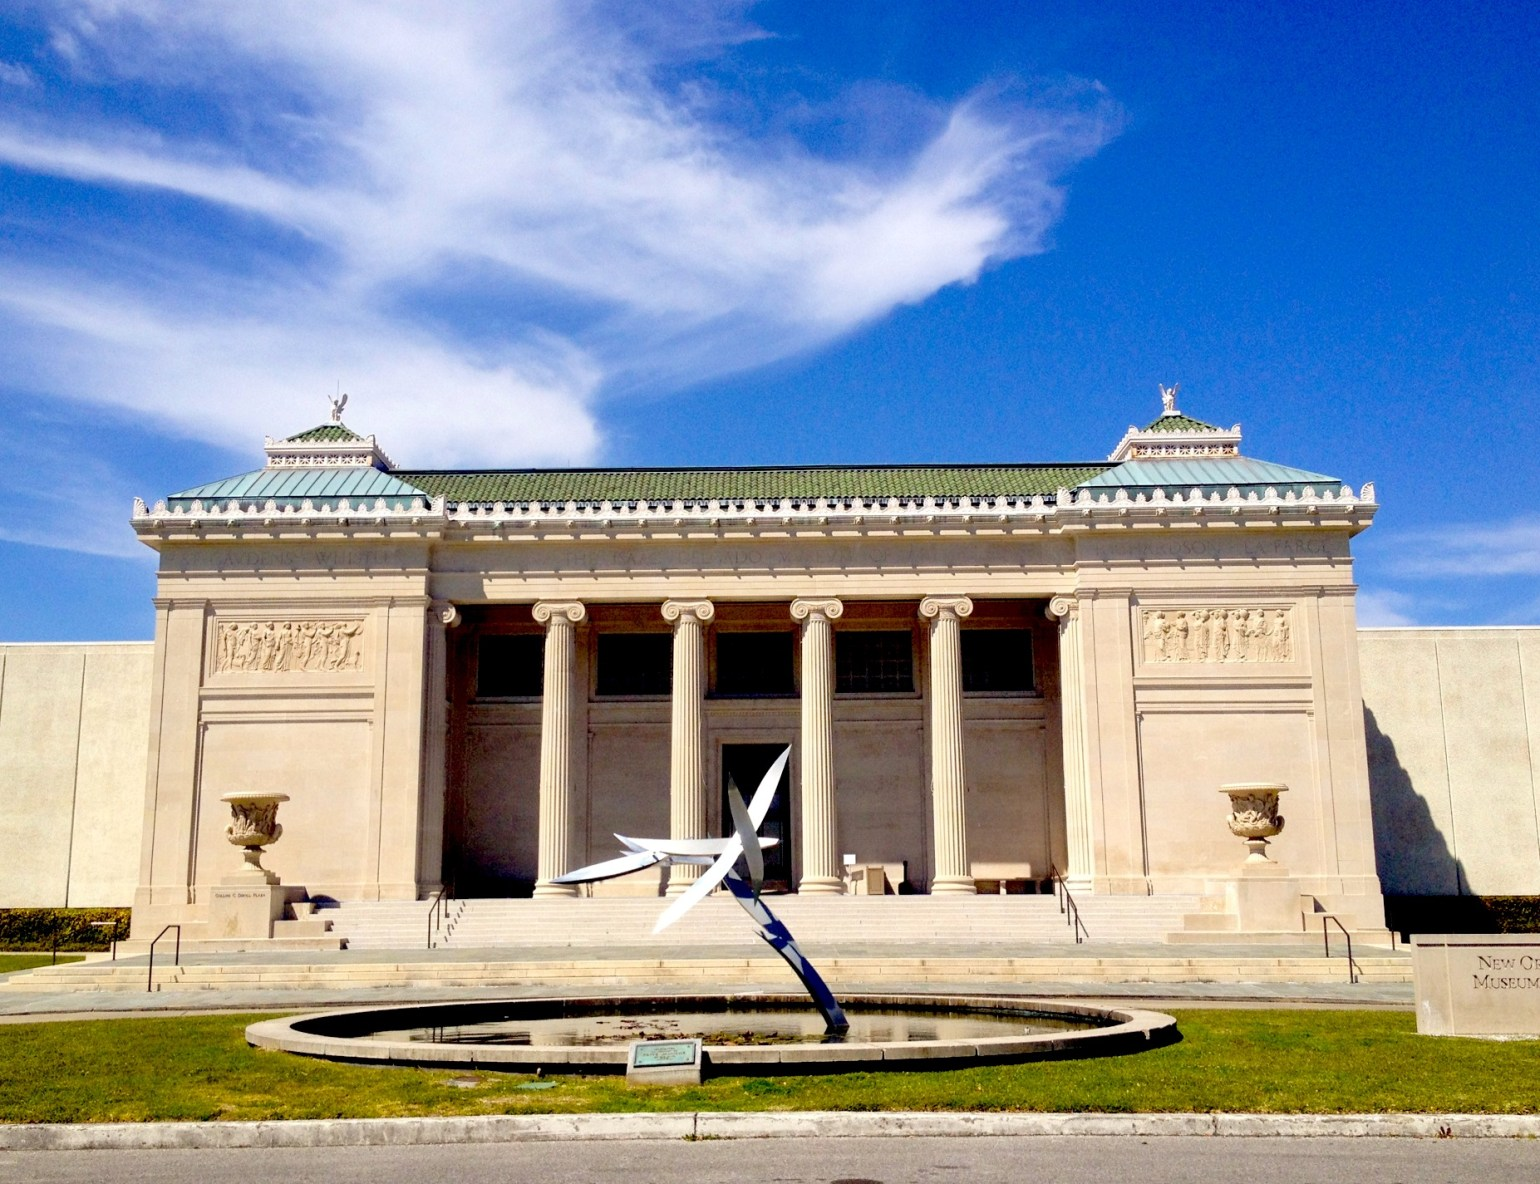 Entrance to the New Orleans Museum of Art. (Courtesy photo)